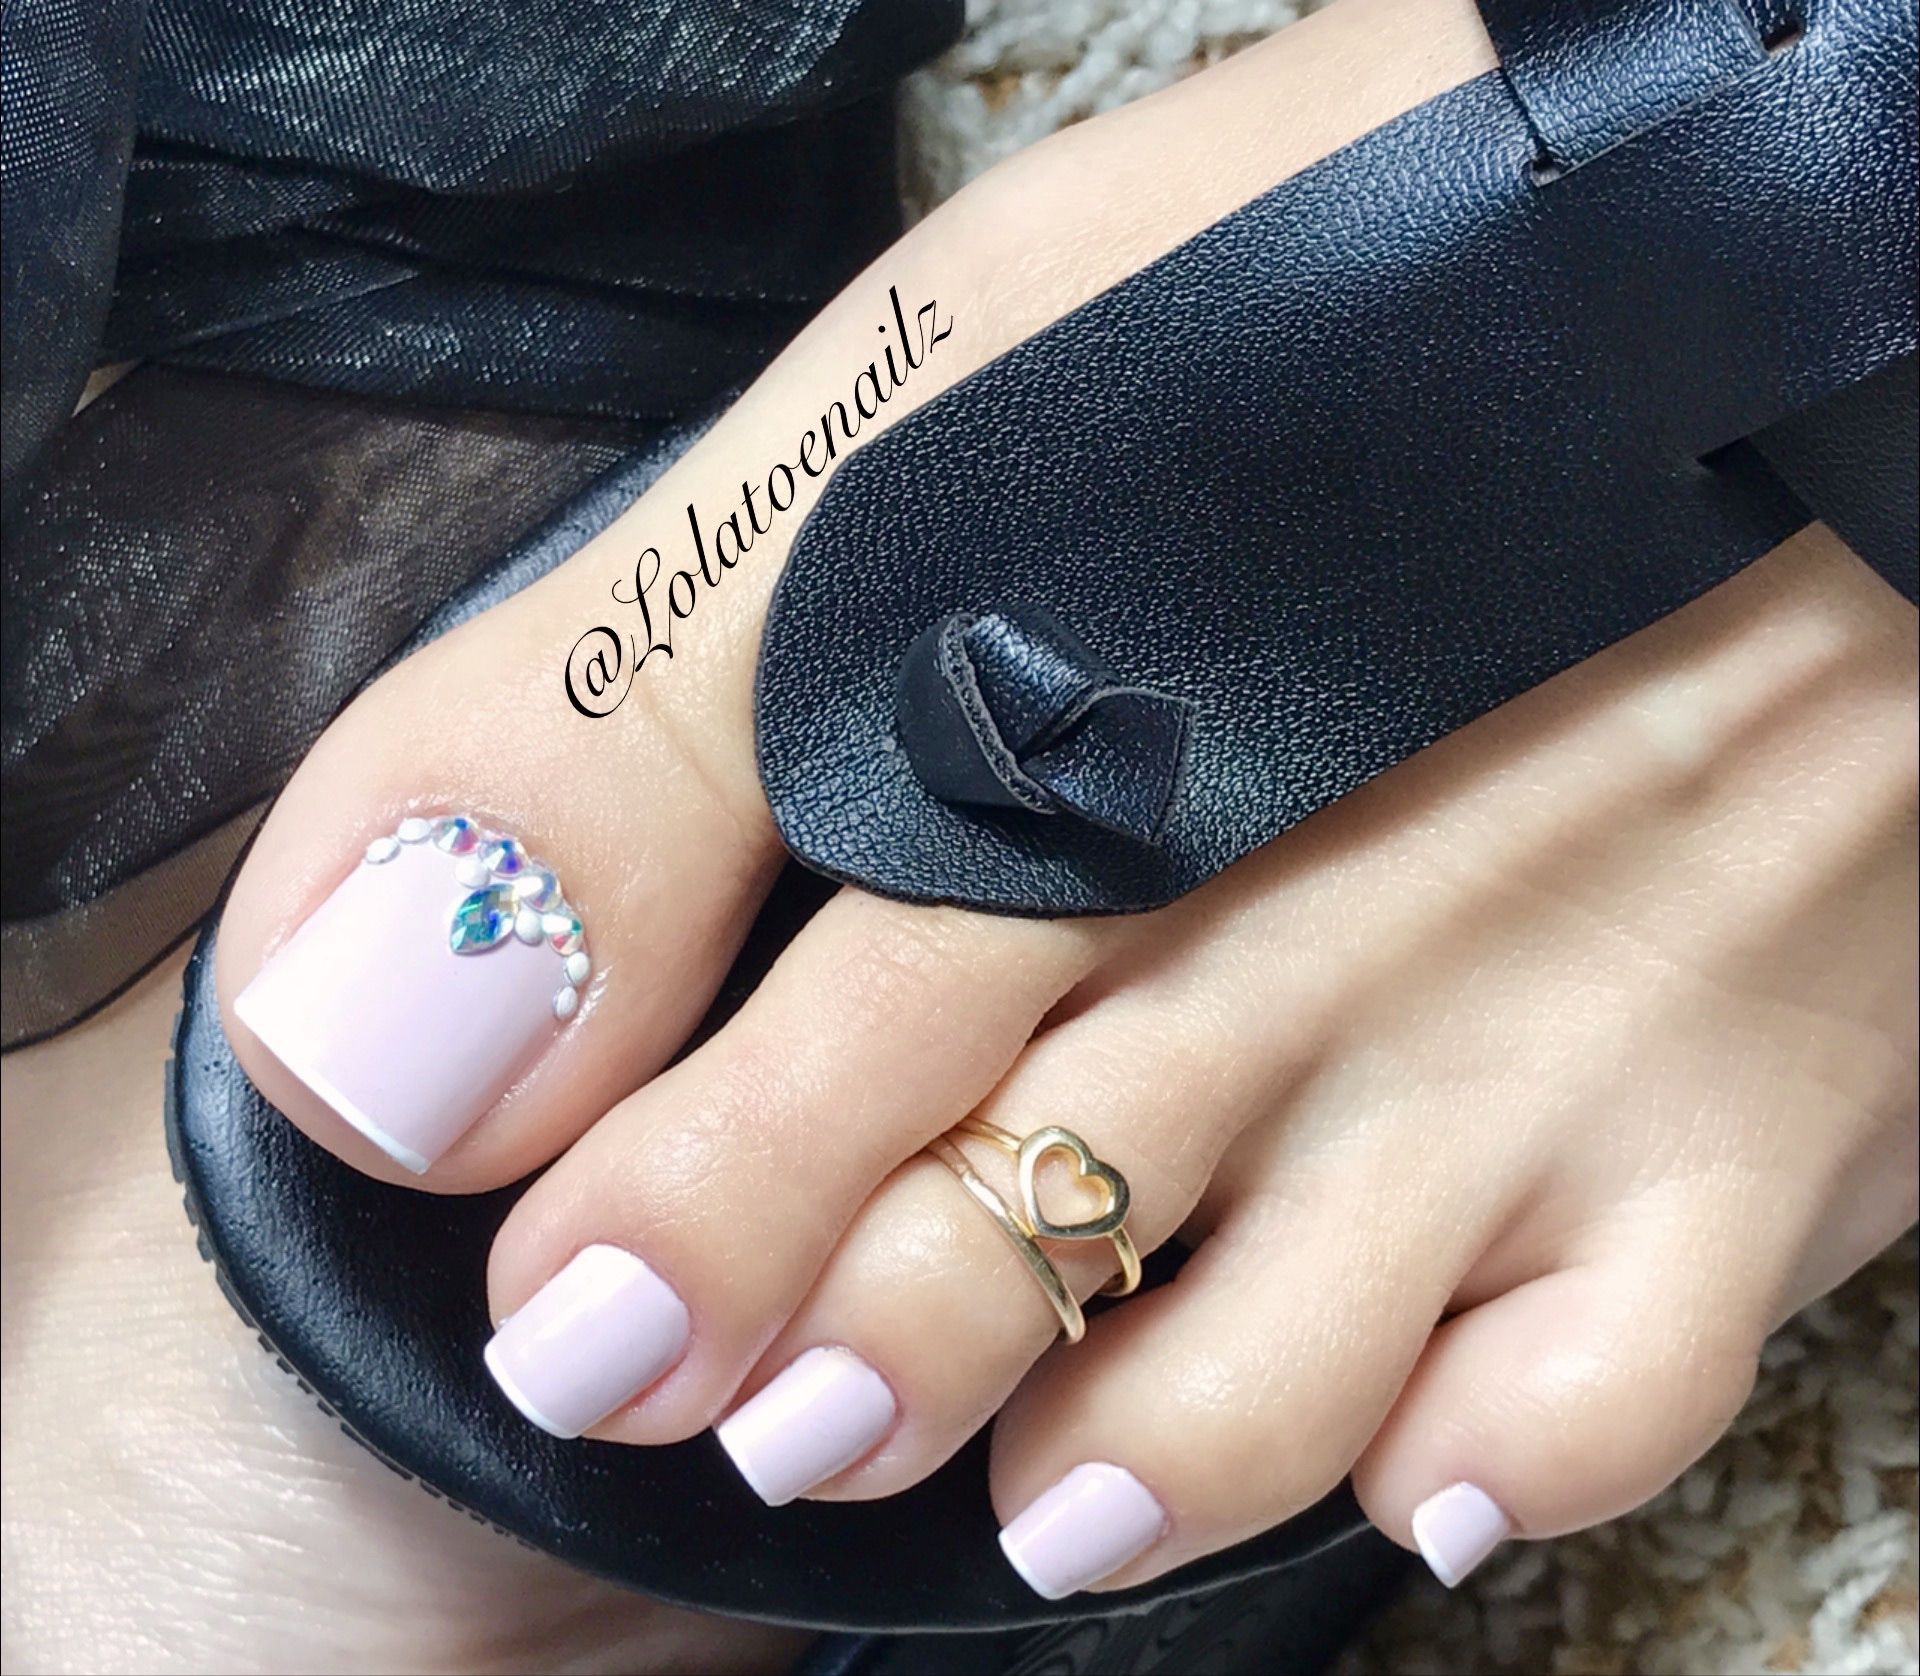 French Pedicure With Design Stones Toe Nails Toe Nail Designs French Pedicure